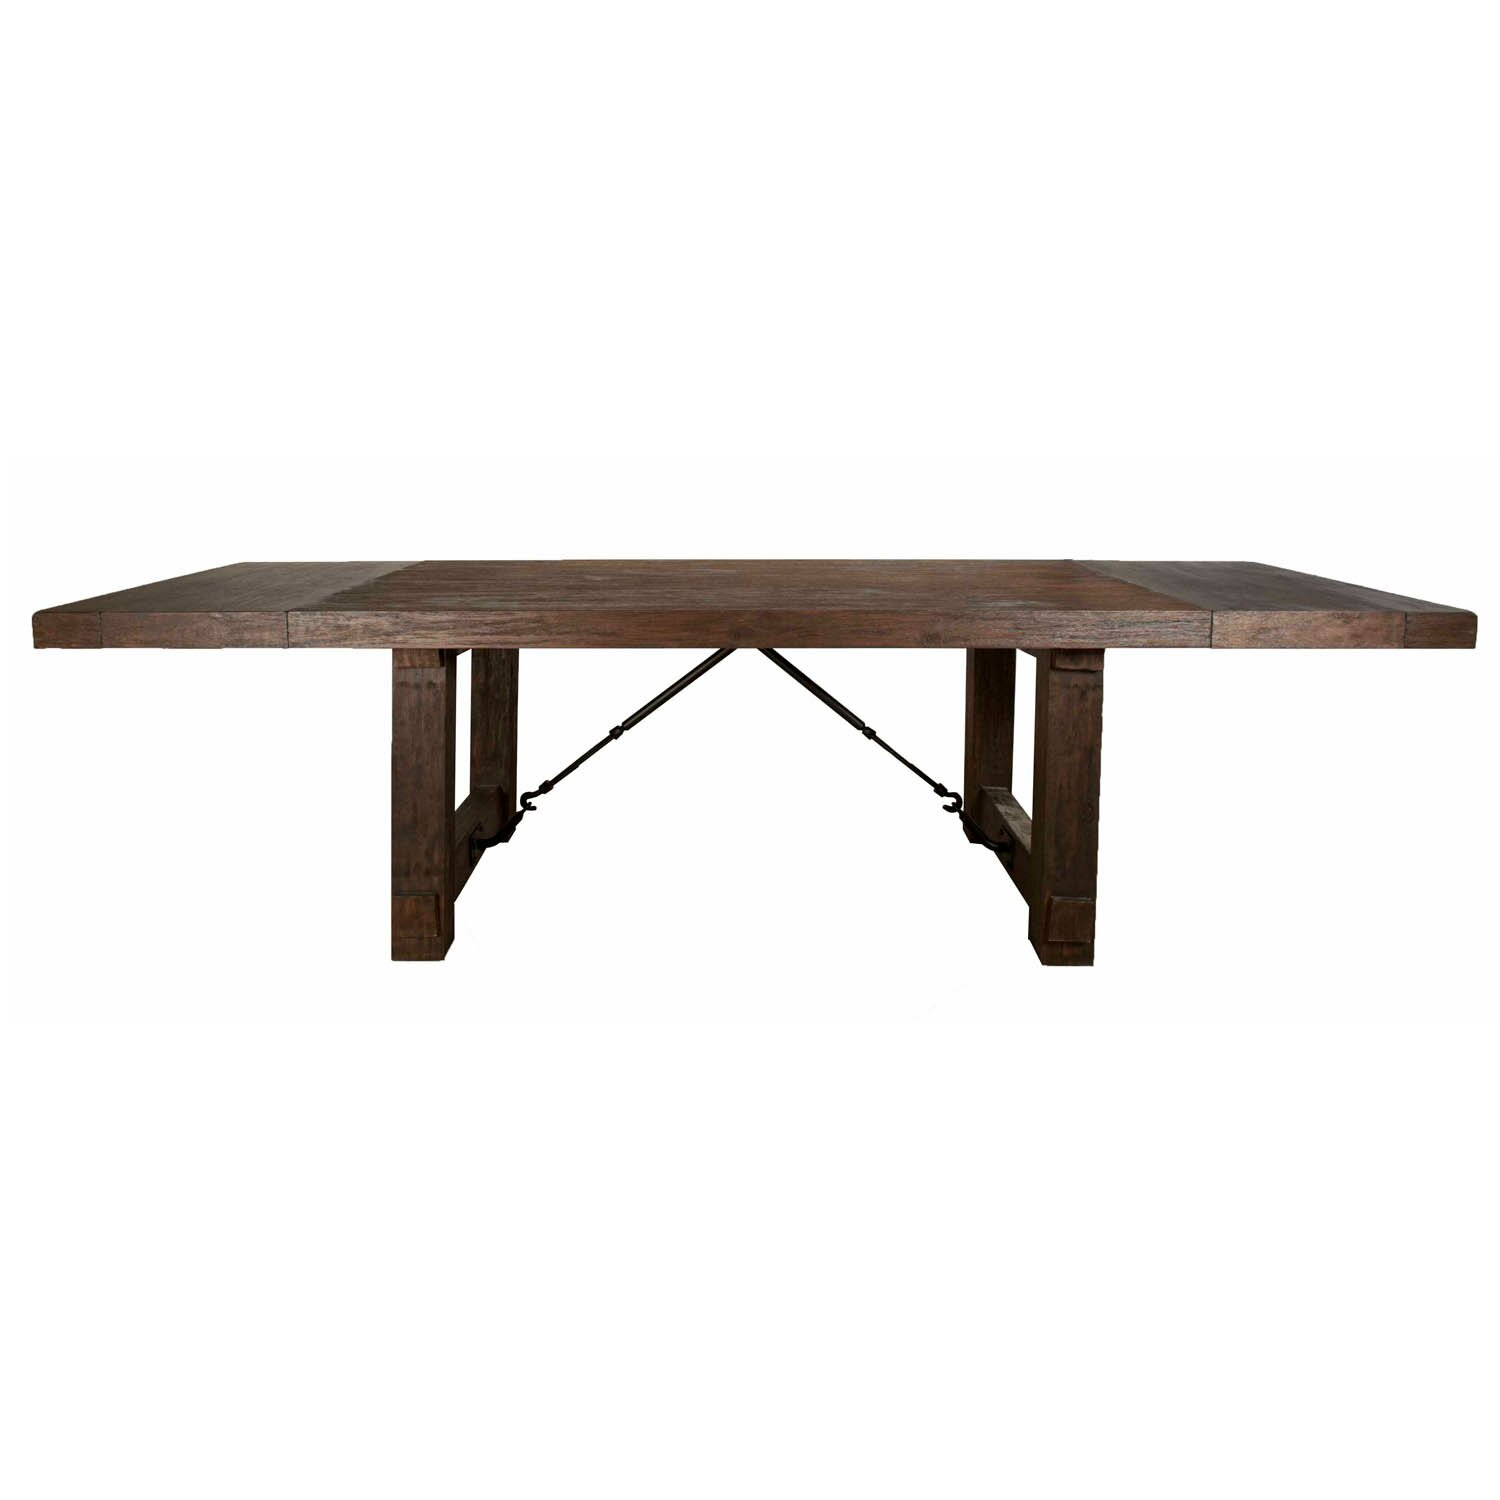 Large Oak Dining Table Seats 10 8 Seat Kitchen Dining Tables Youll Love Wayfair